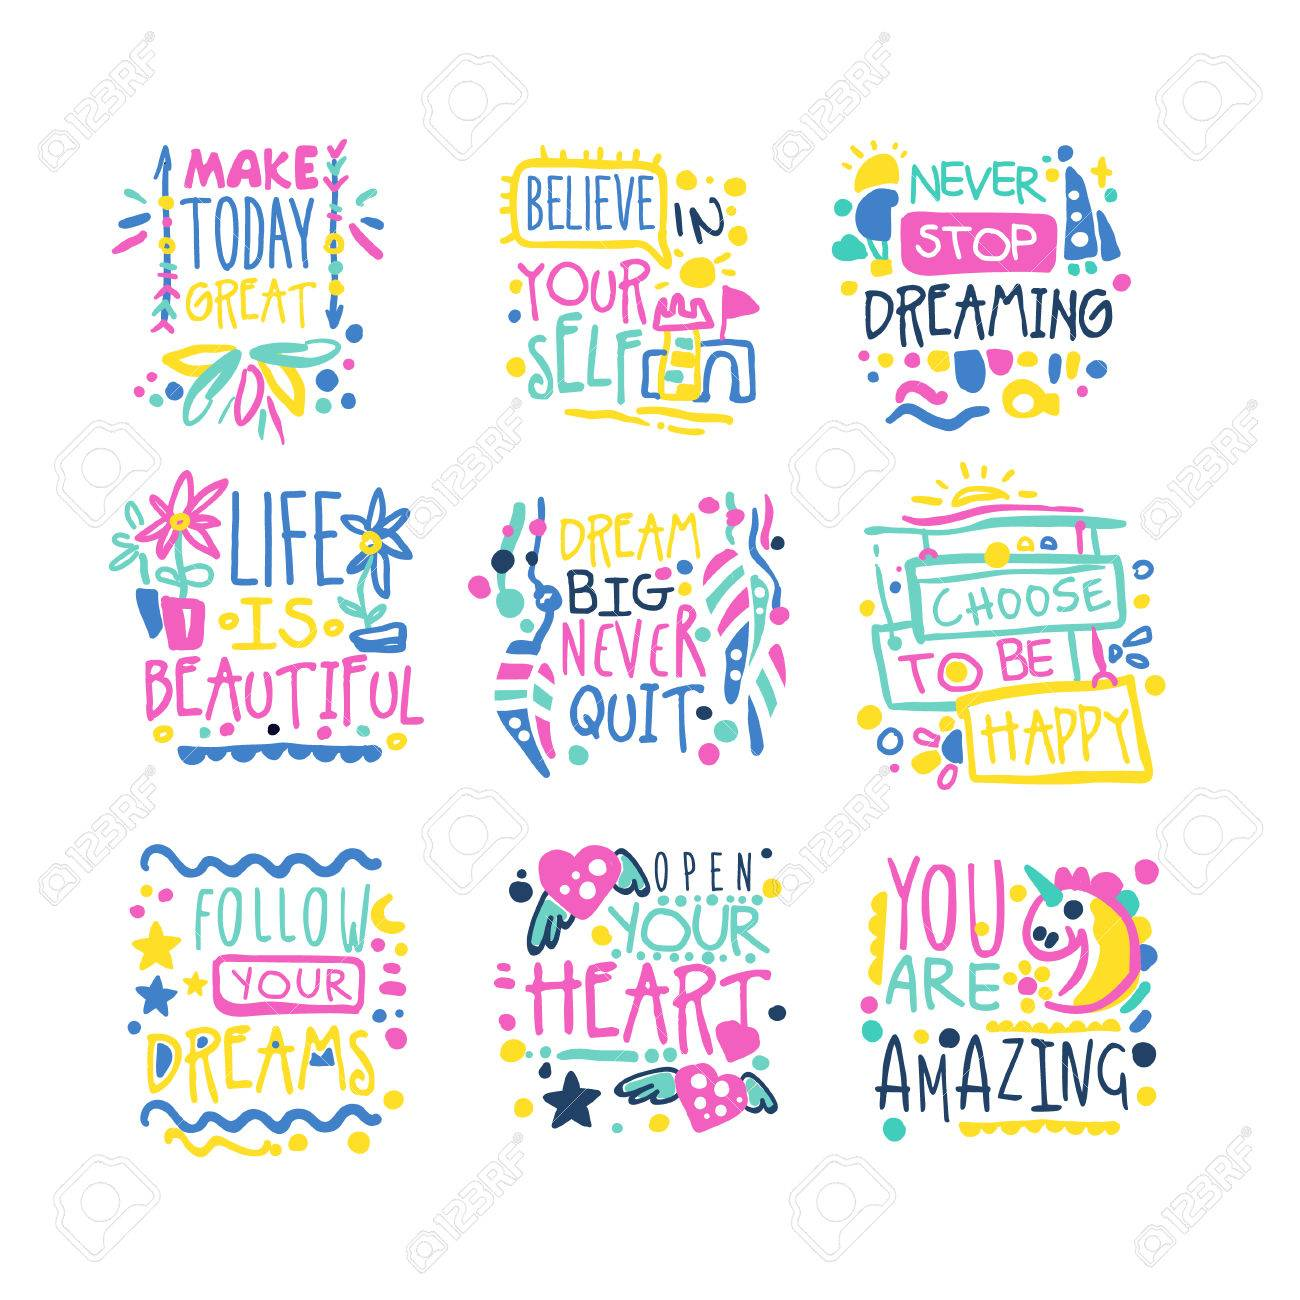 - Short Possitive Messages, Inspirational Quotes Colorful Hand